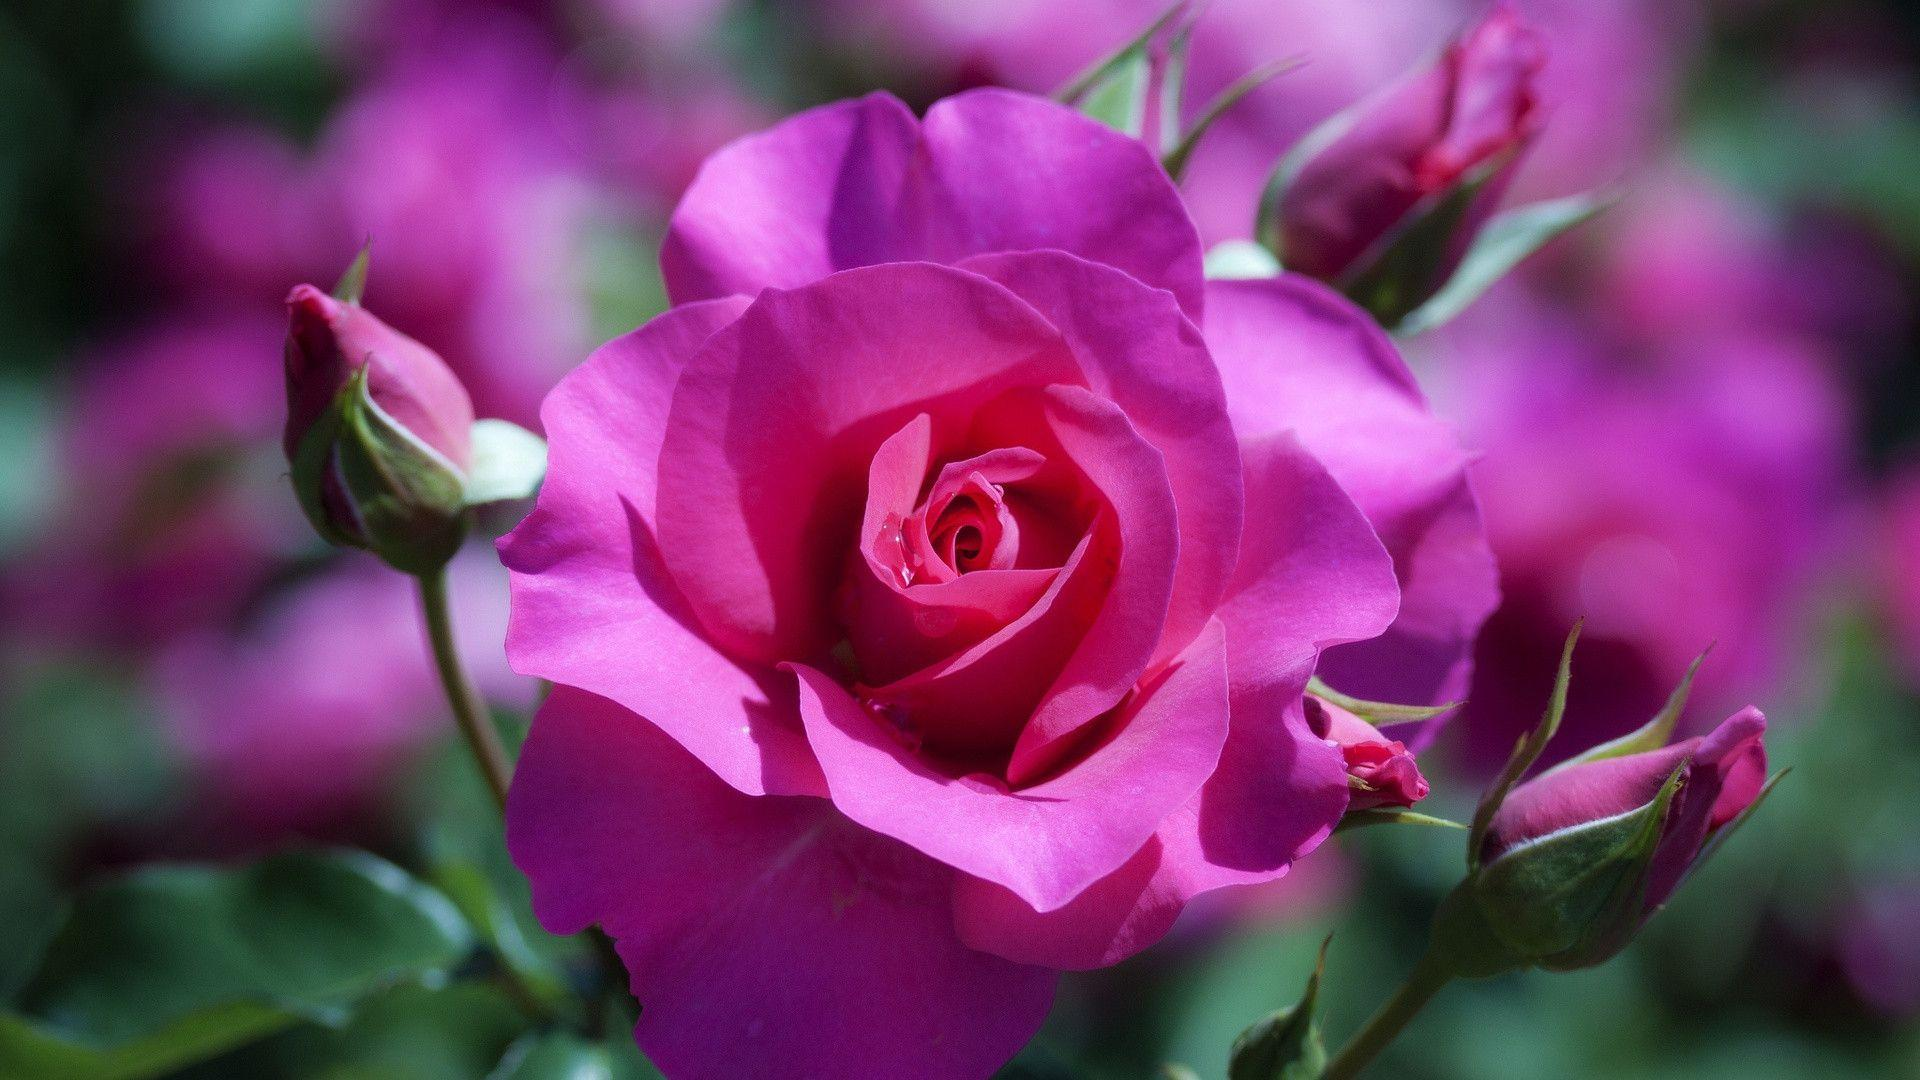 Natural Rose Flower Pic Hd Vinny Oleo Vegetal Info